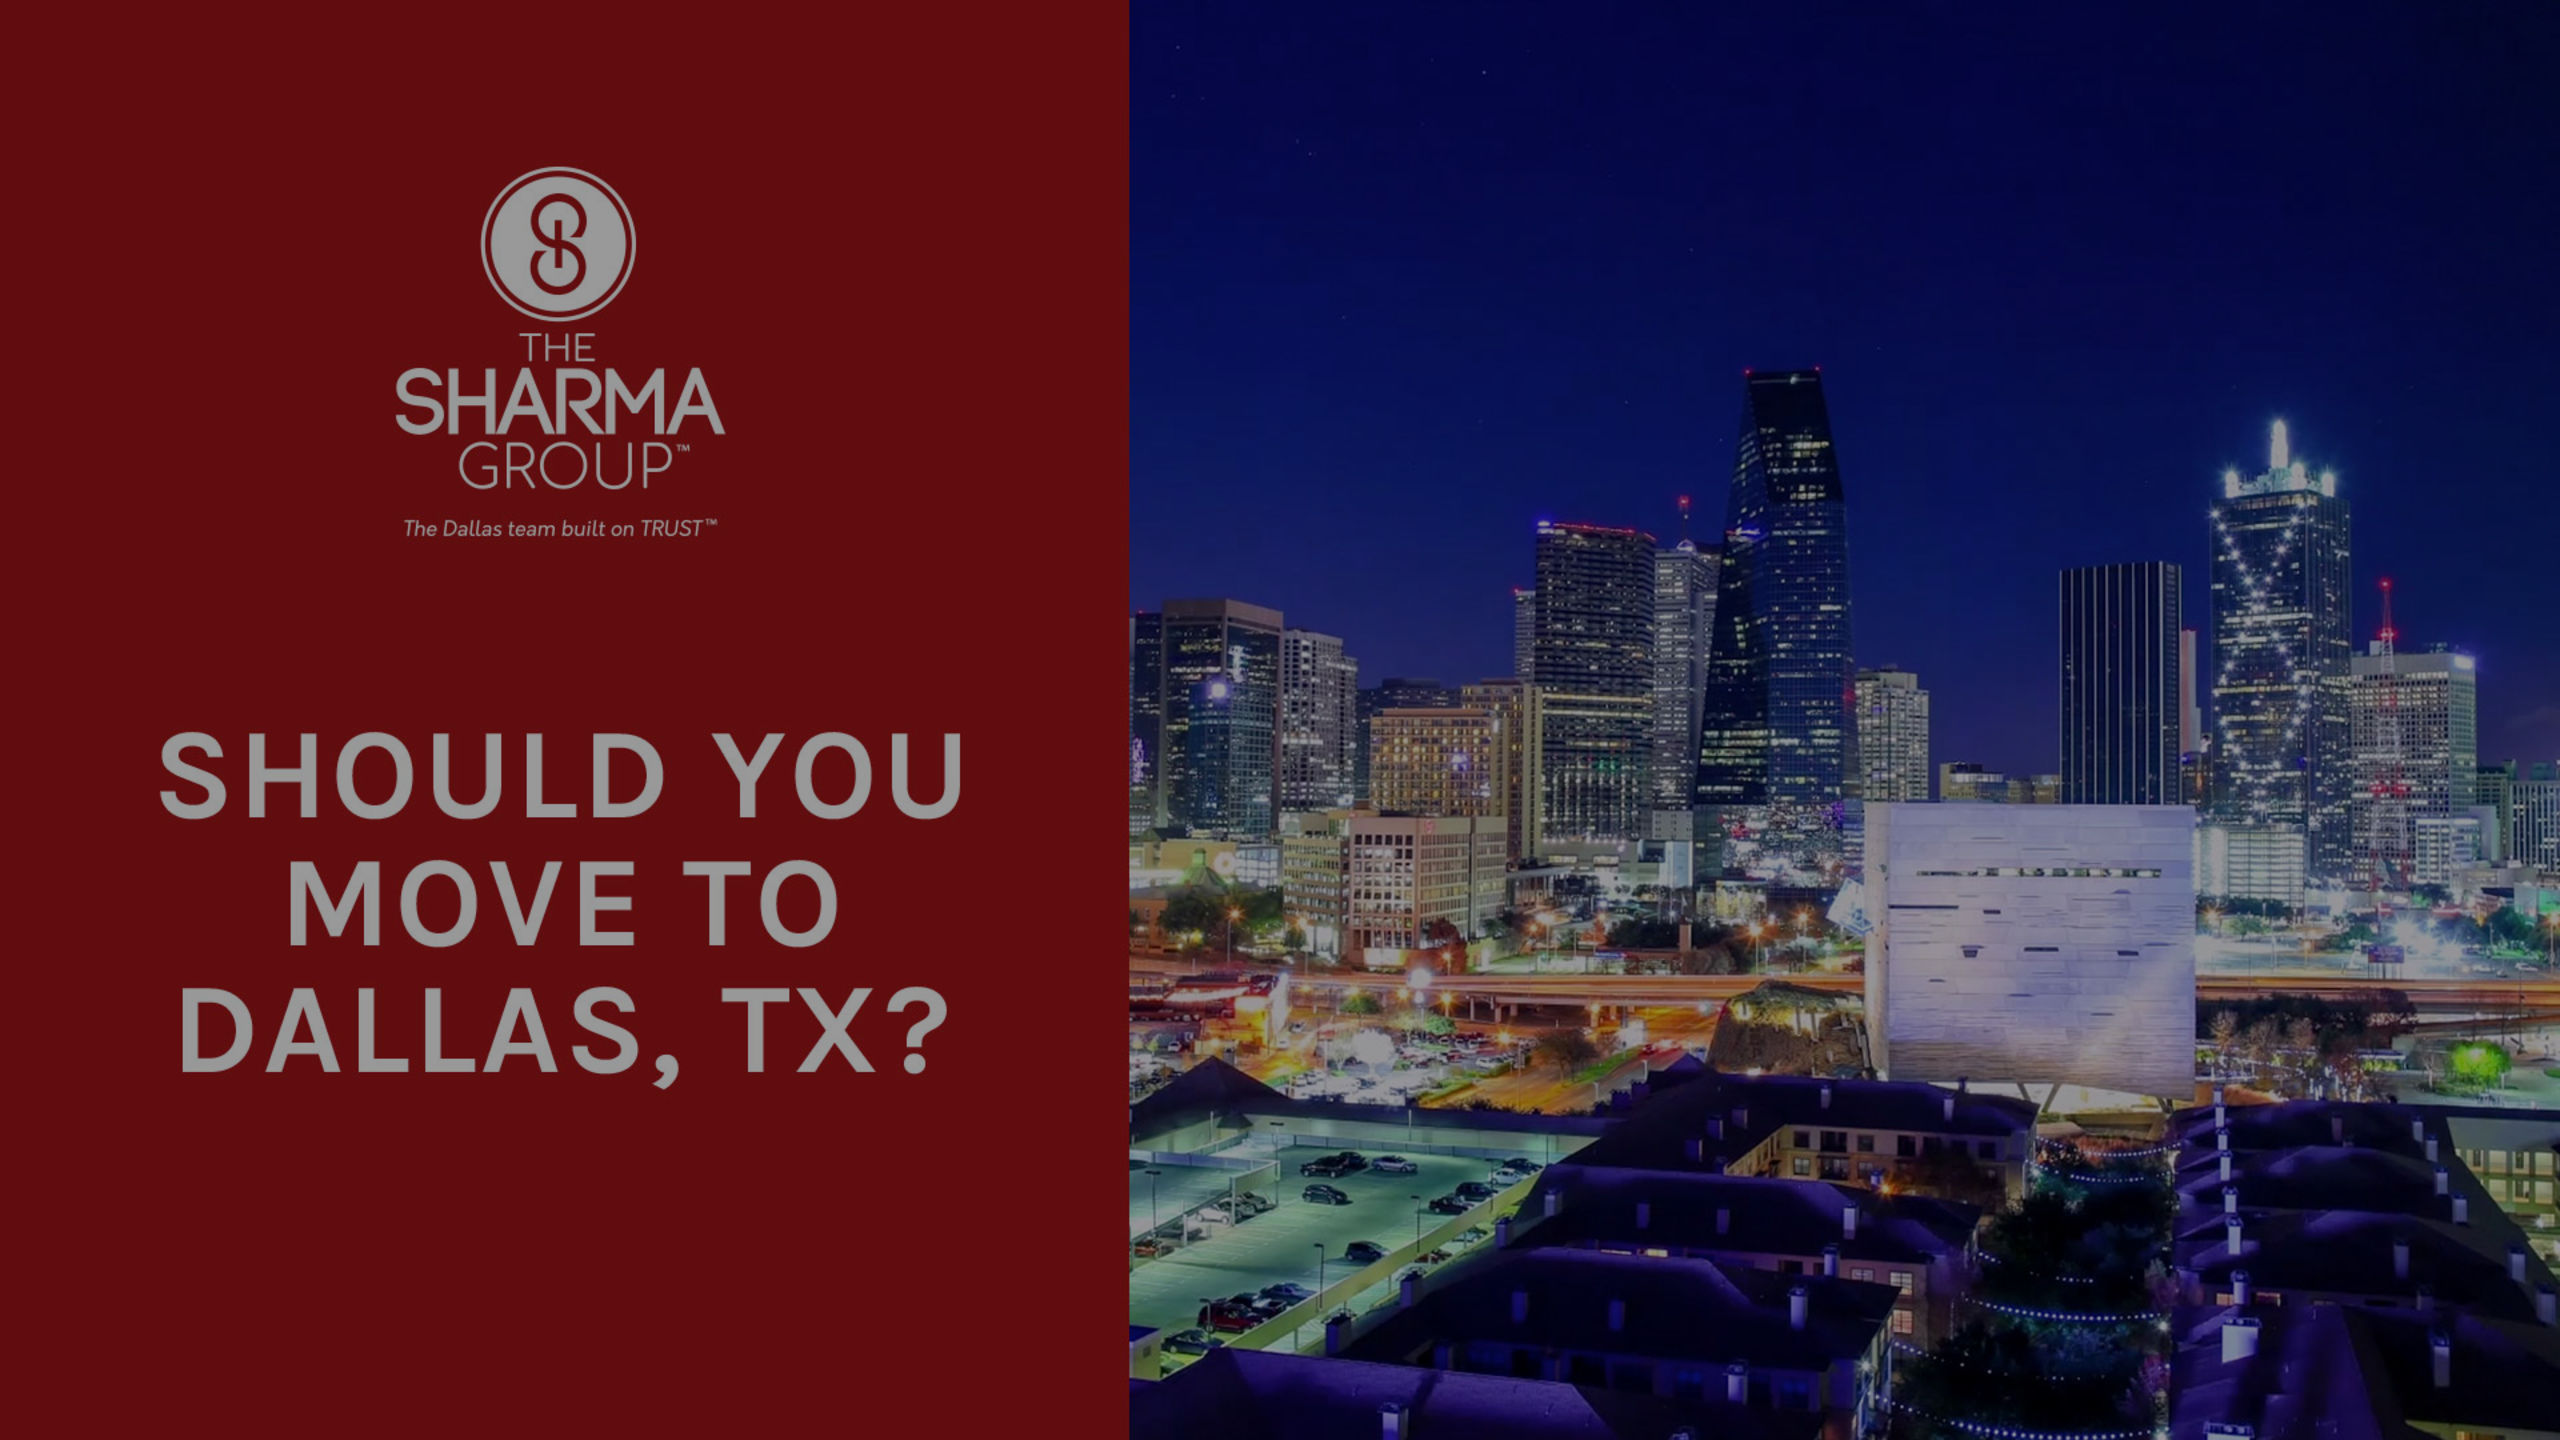 Should You Move to Dallas?